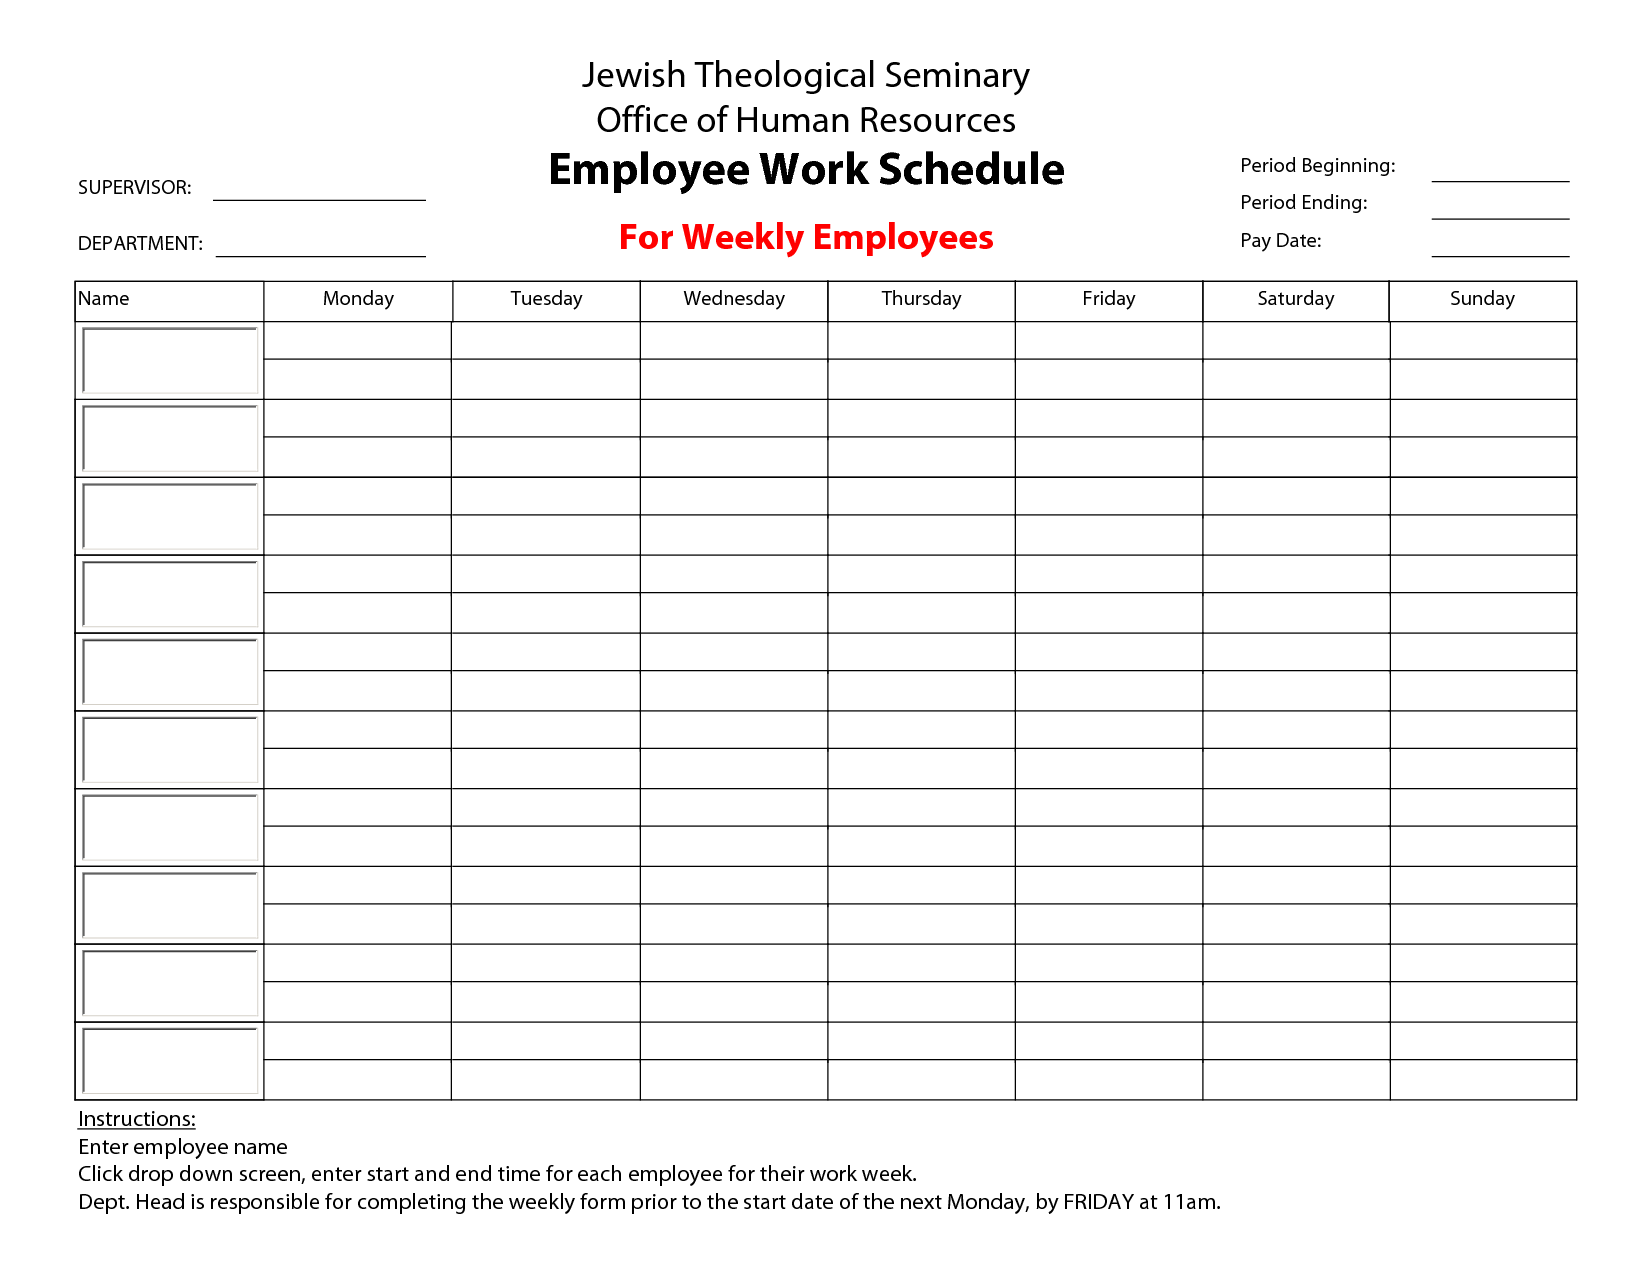 20 hour work week template employee work schedule for weekly employees print form jewish. Black Bedroom Furniture Sets. Home Design Ideas